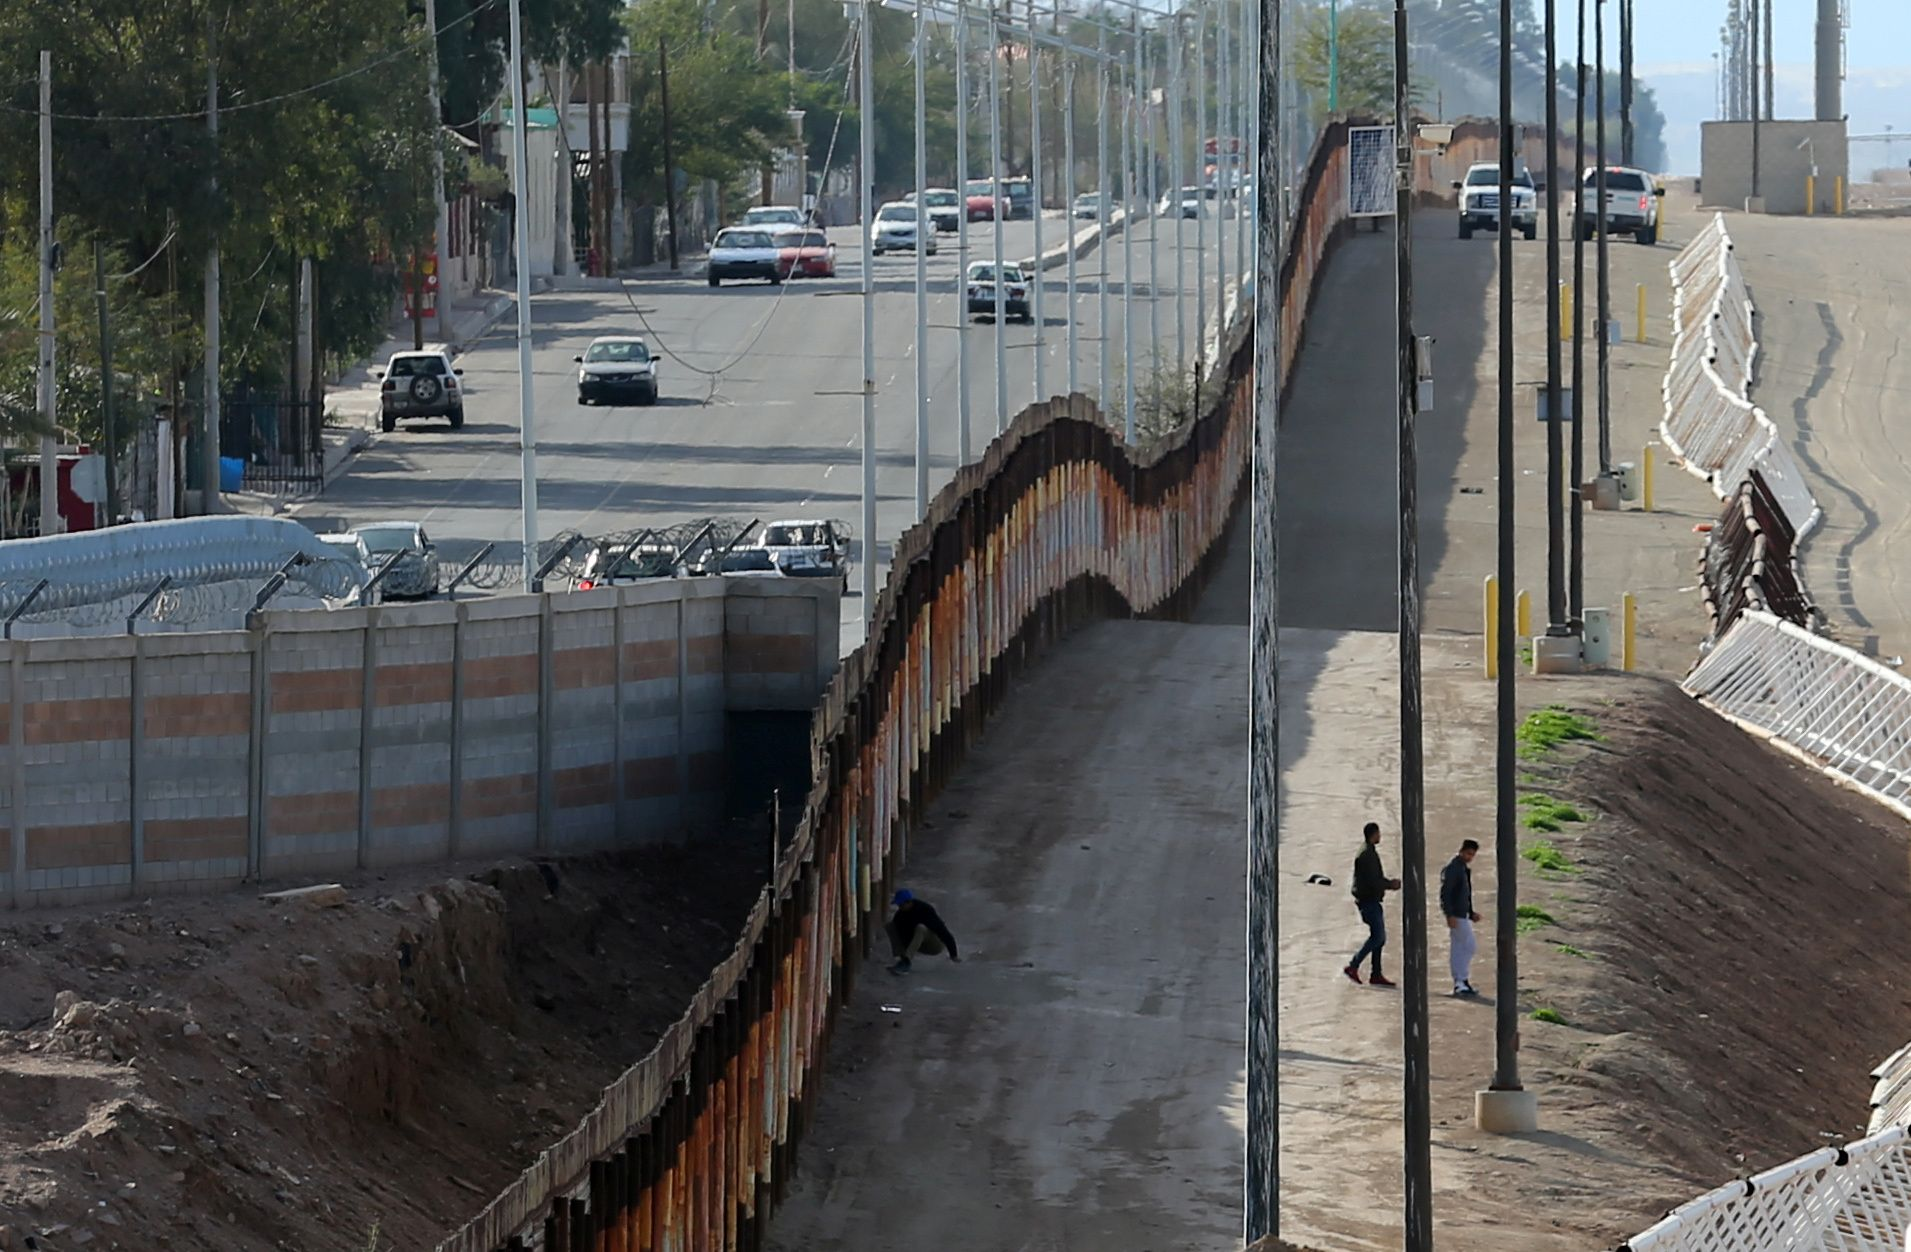 Here S What The Mexico Border Wall Looks Like Now Pbs